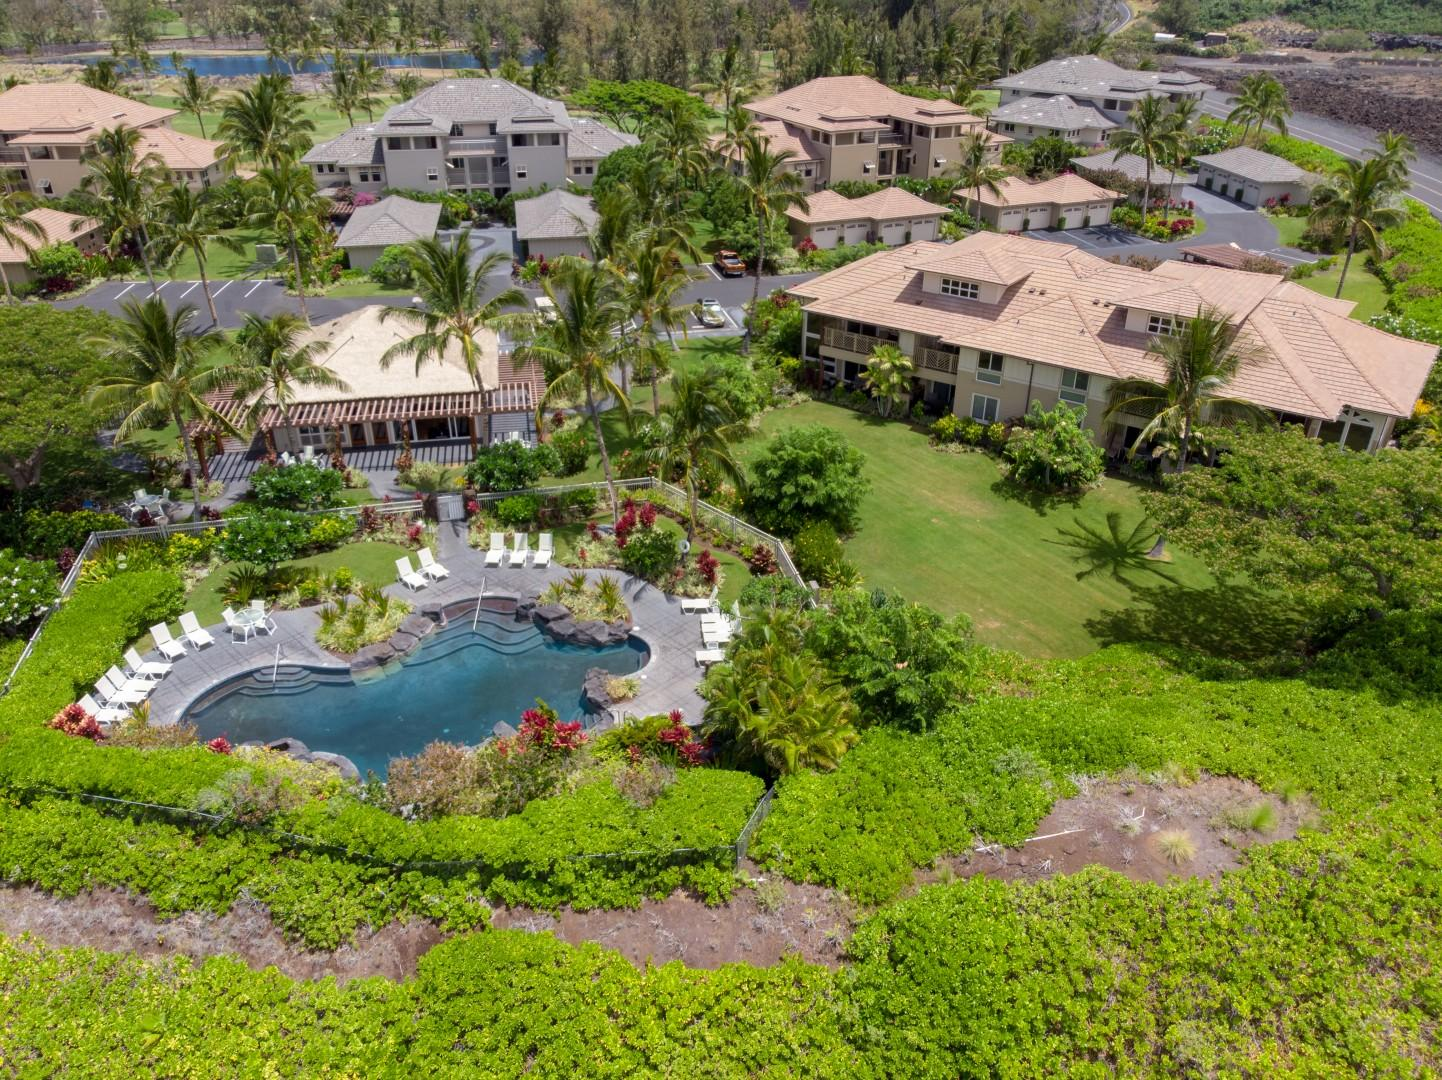 Aerial View of the Villa Showing Close Proximity to the Pool & Fitness Amenity Center